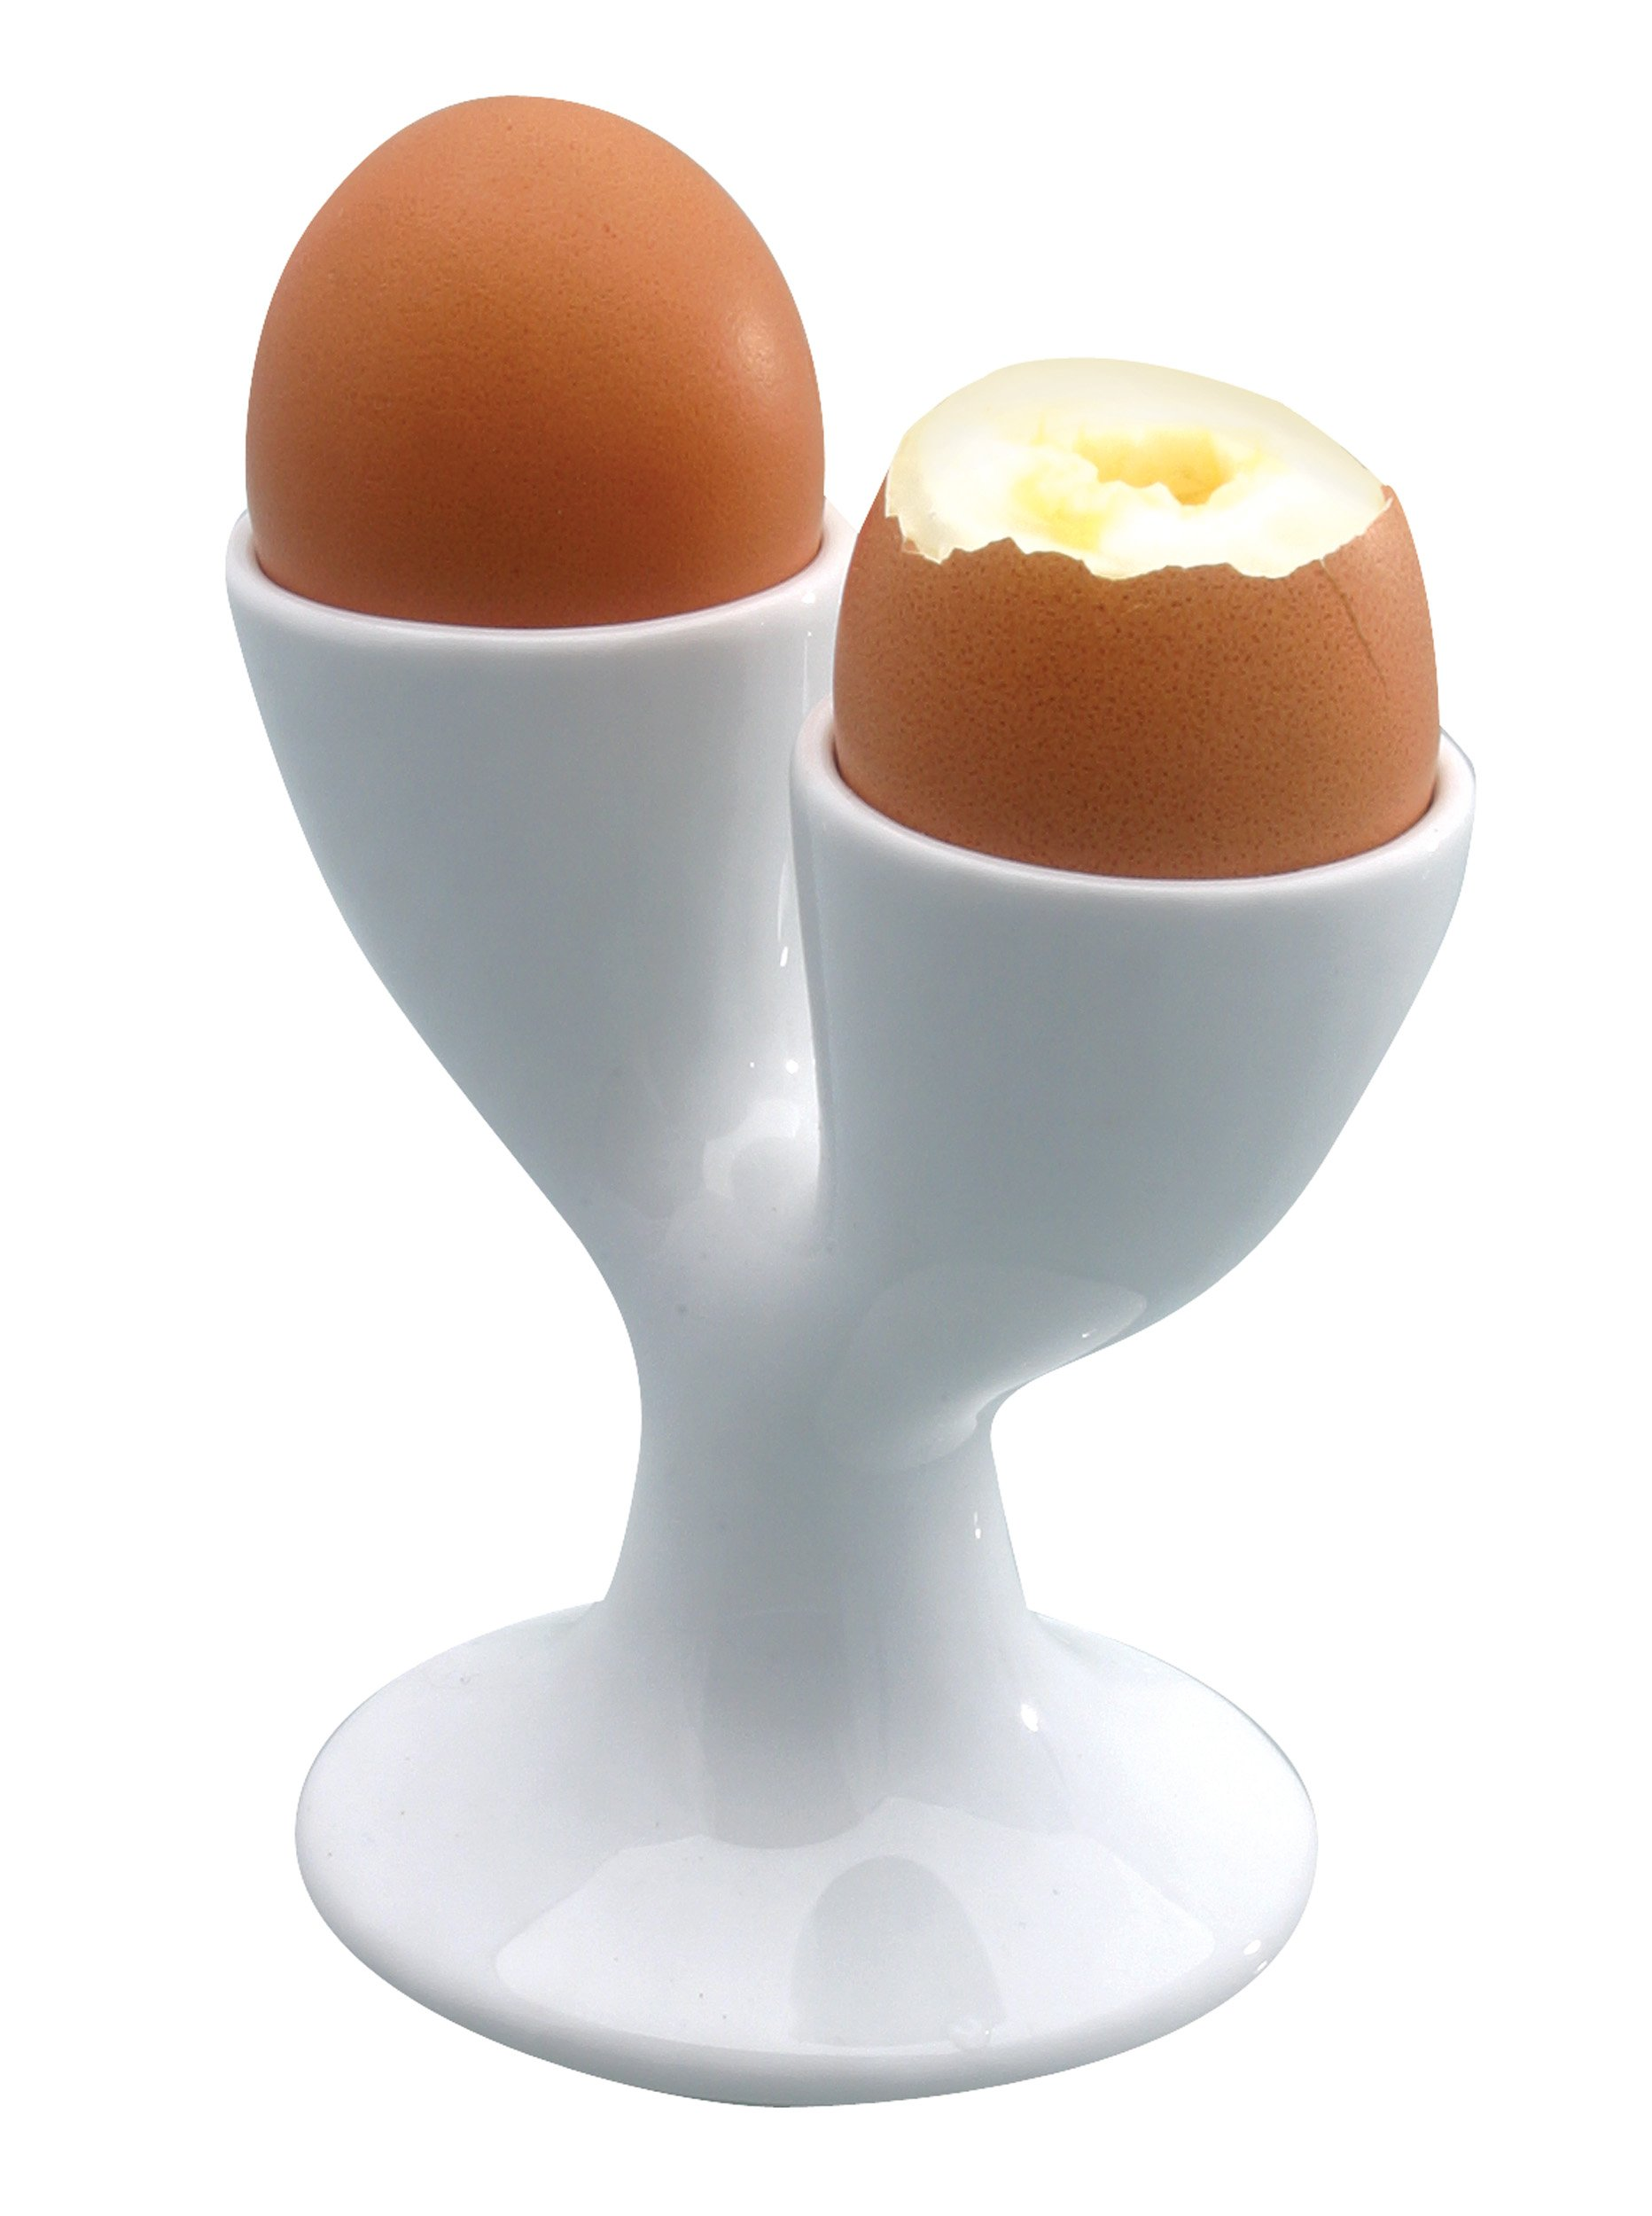 KitchenCraft White Porcelain Double Egg Cup